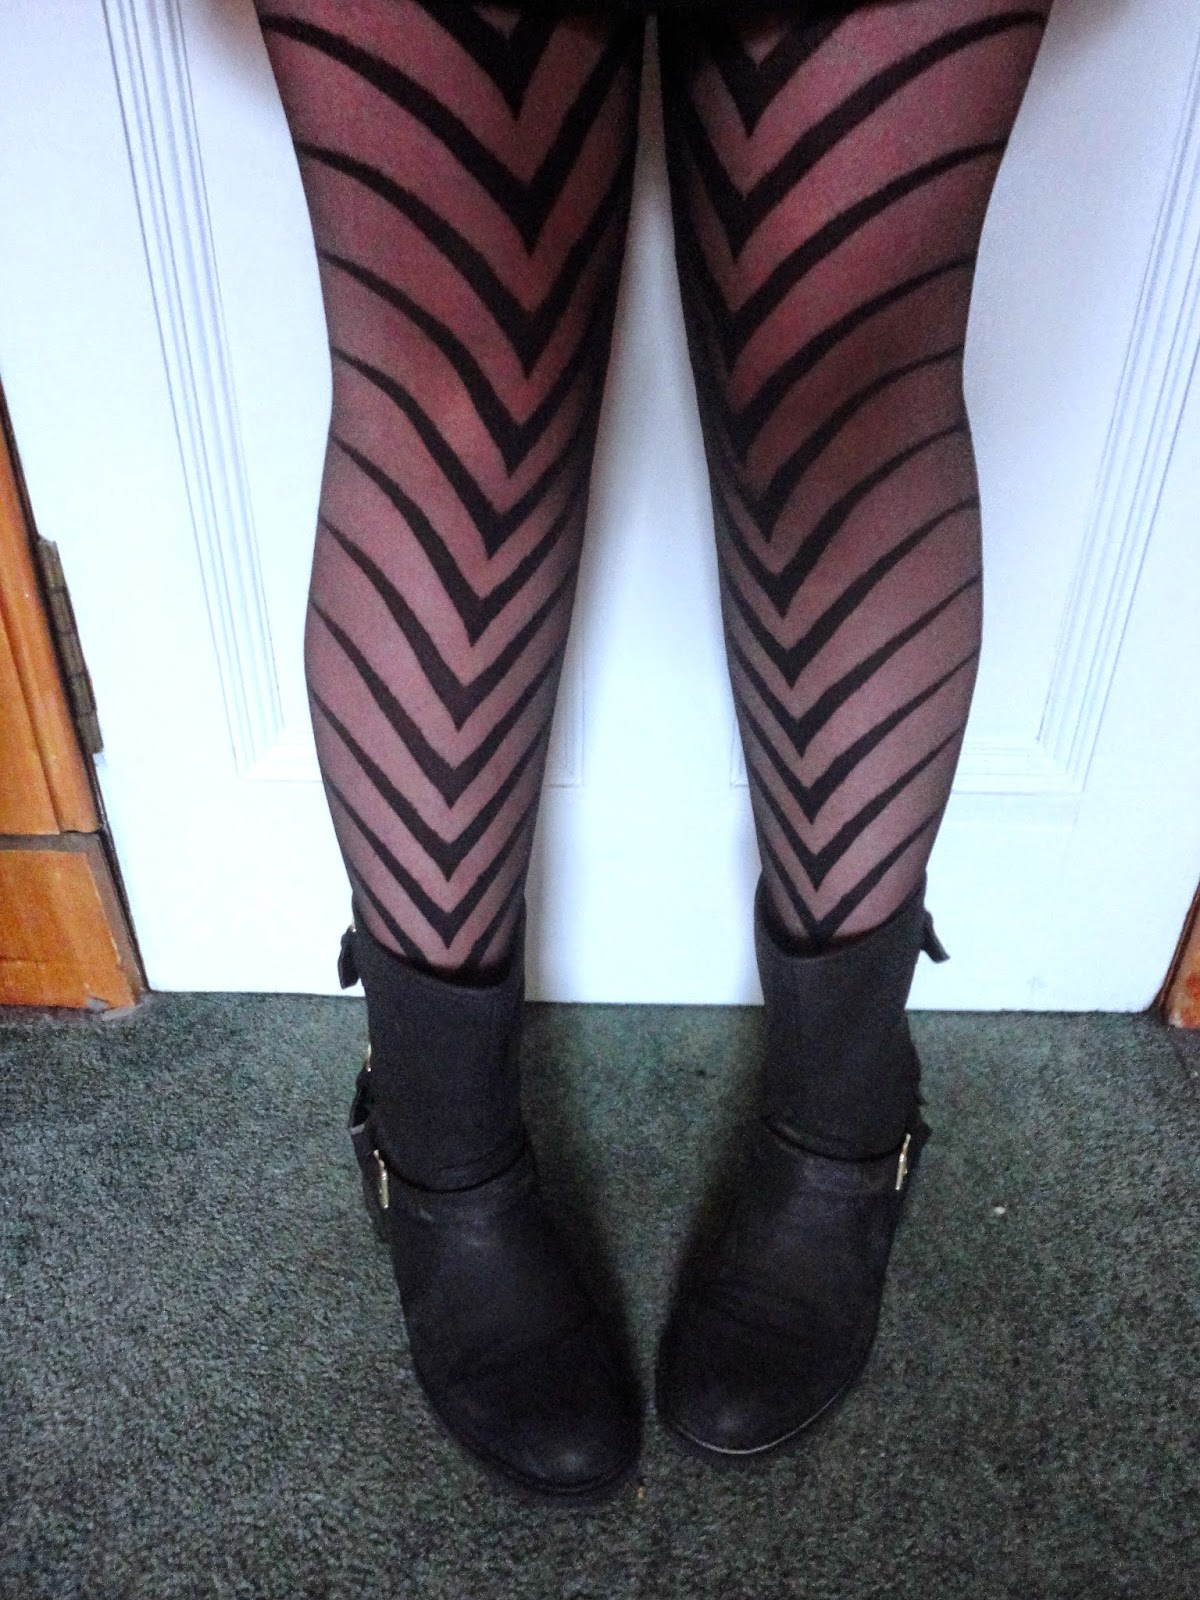 Outfit details | black geometric striped arrow tights, black biker boots